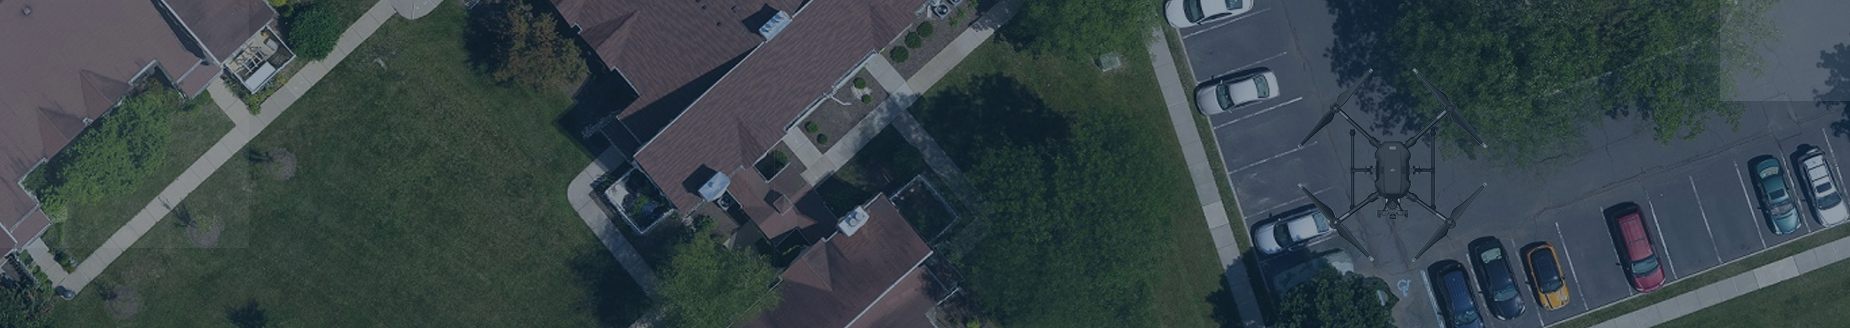 Drone Survey Services in London & Saudi Arabia | Aerial Imagery